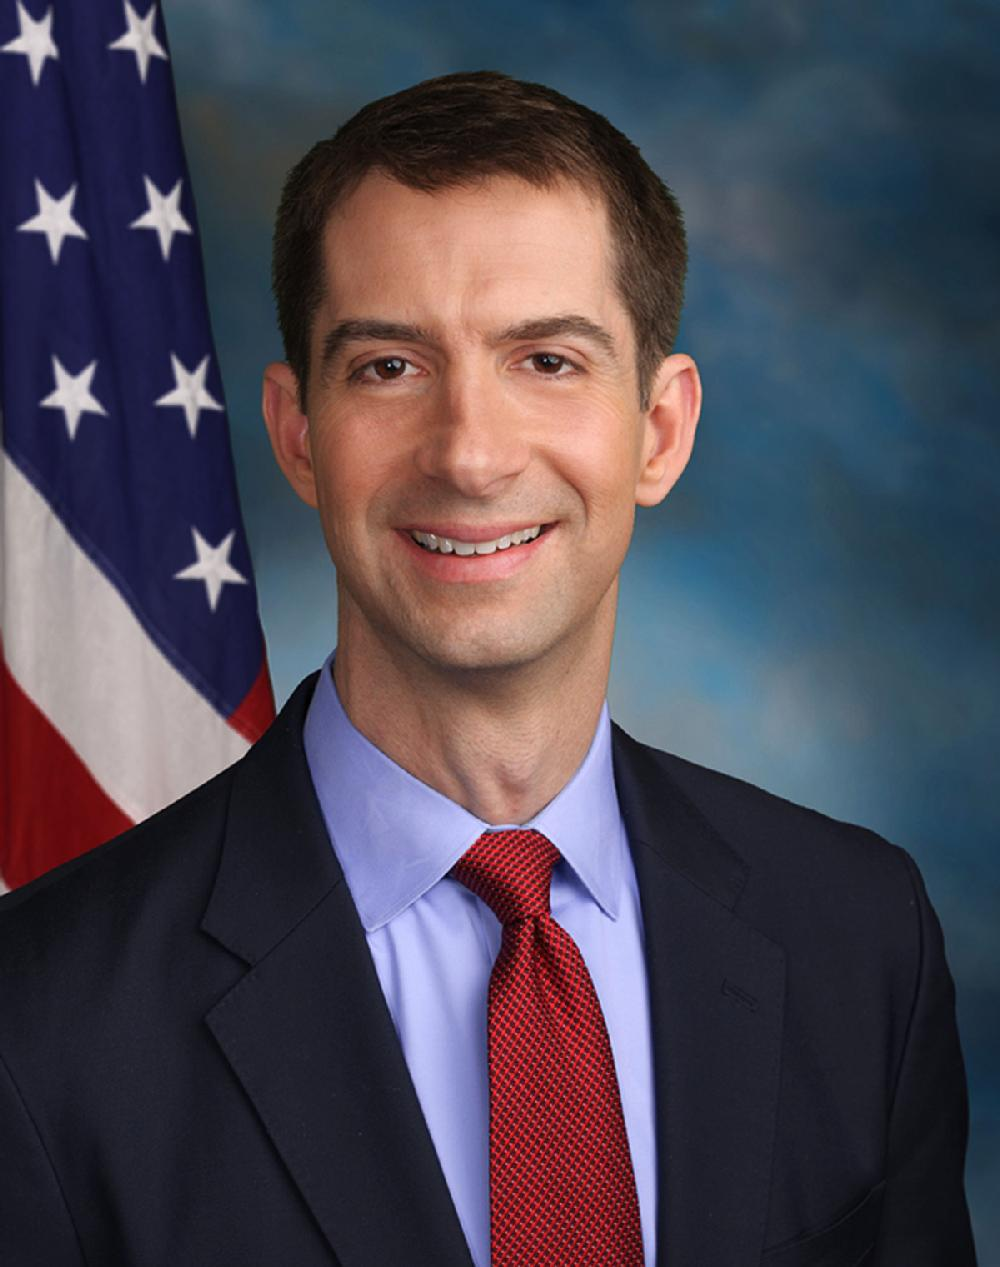 Tom_Cotton_official_Senate_photo.jpg